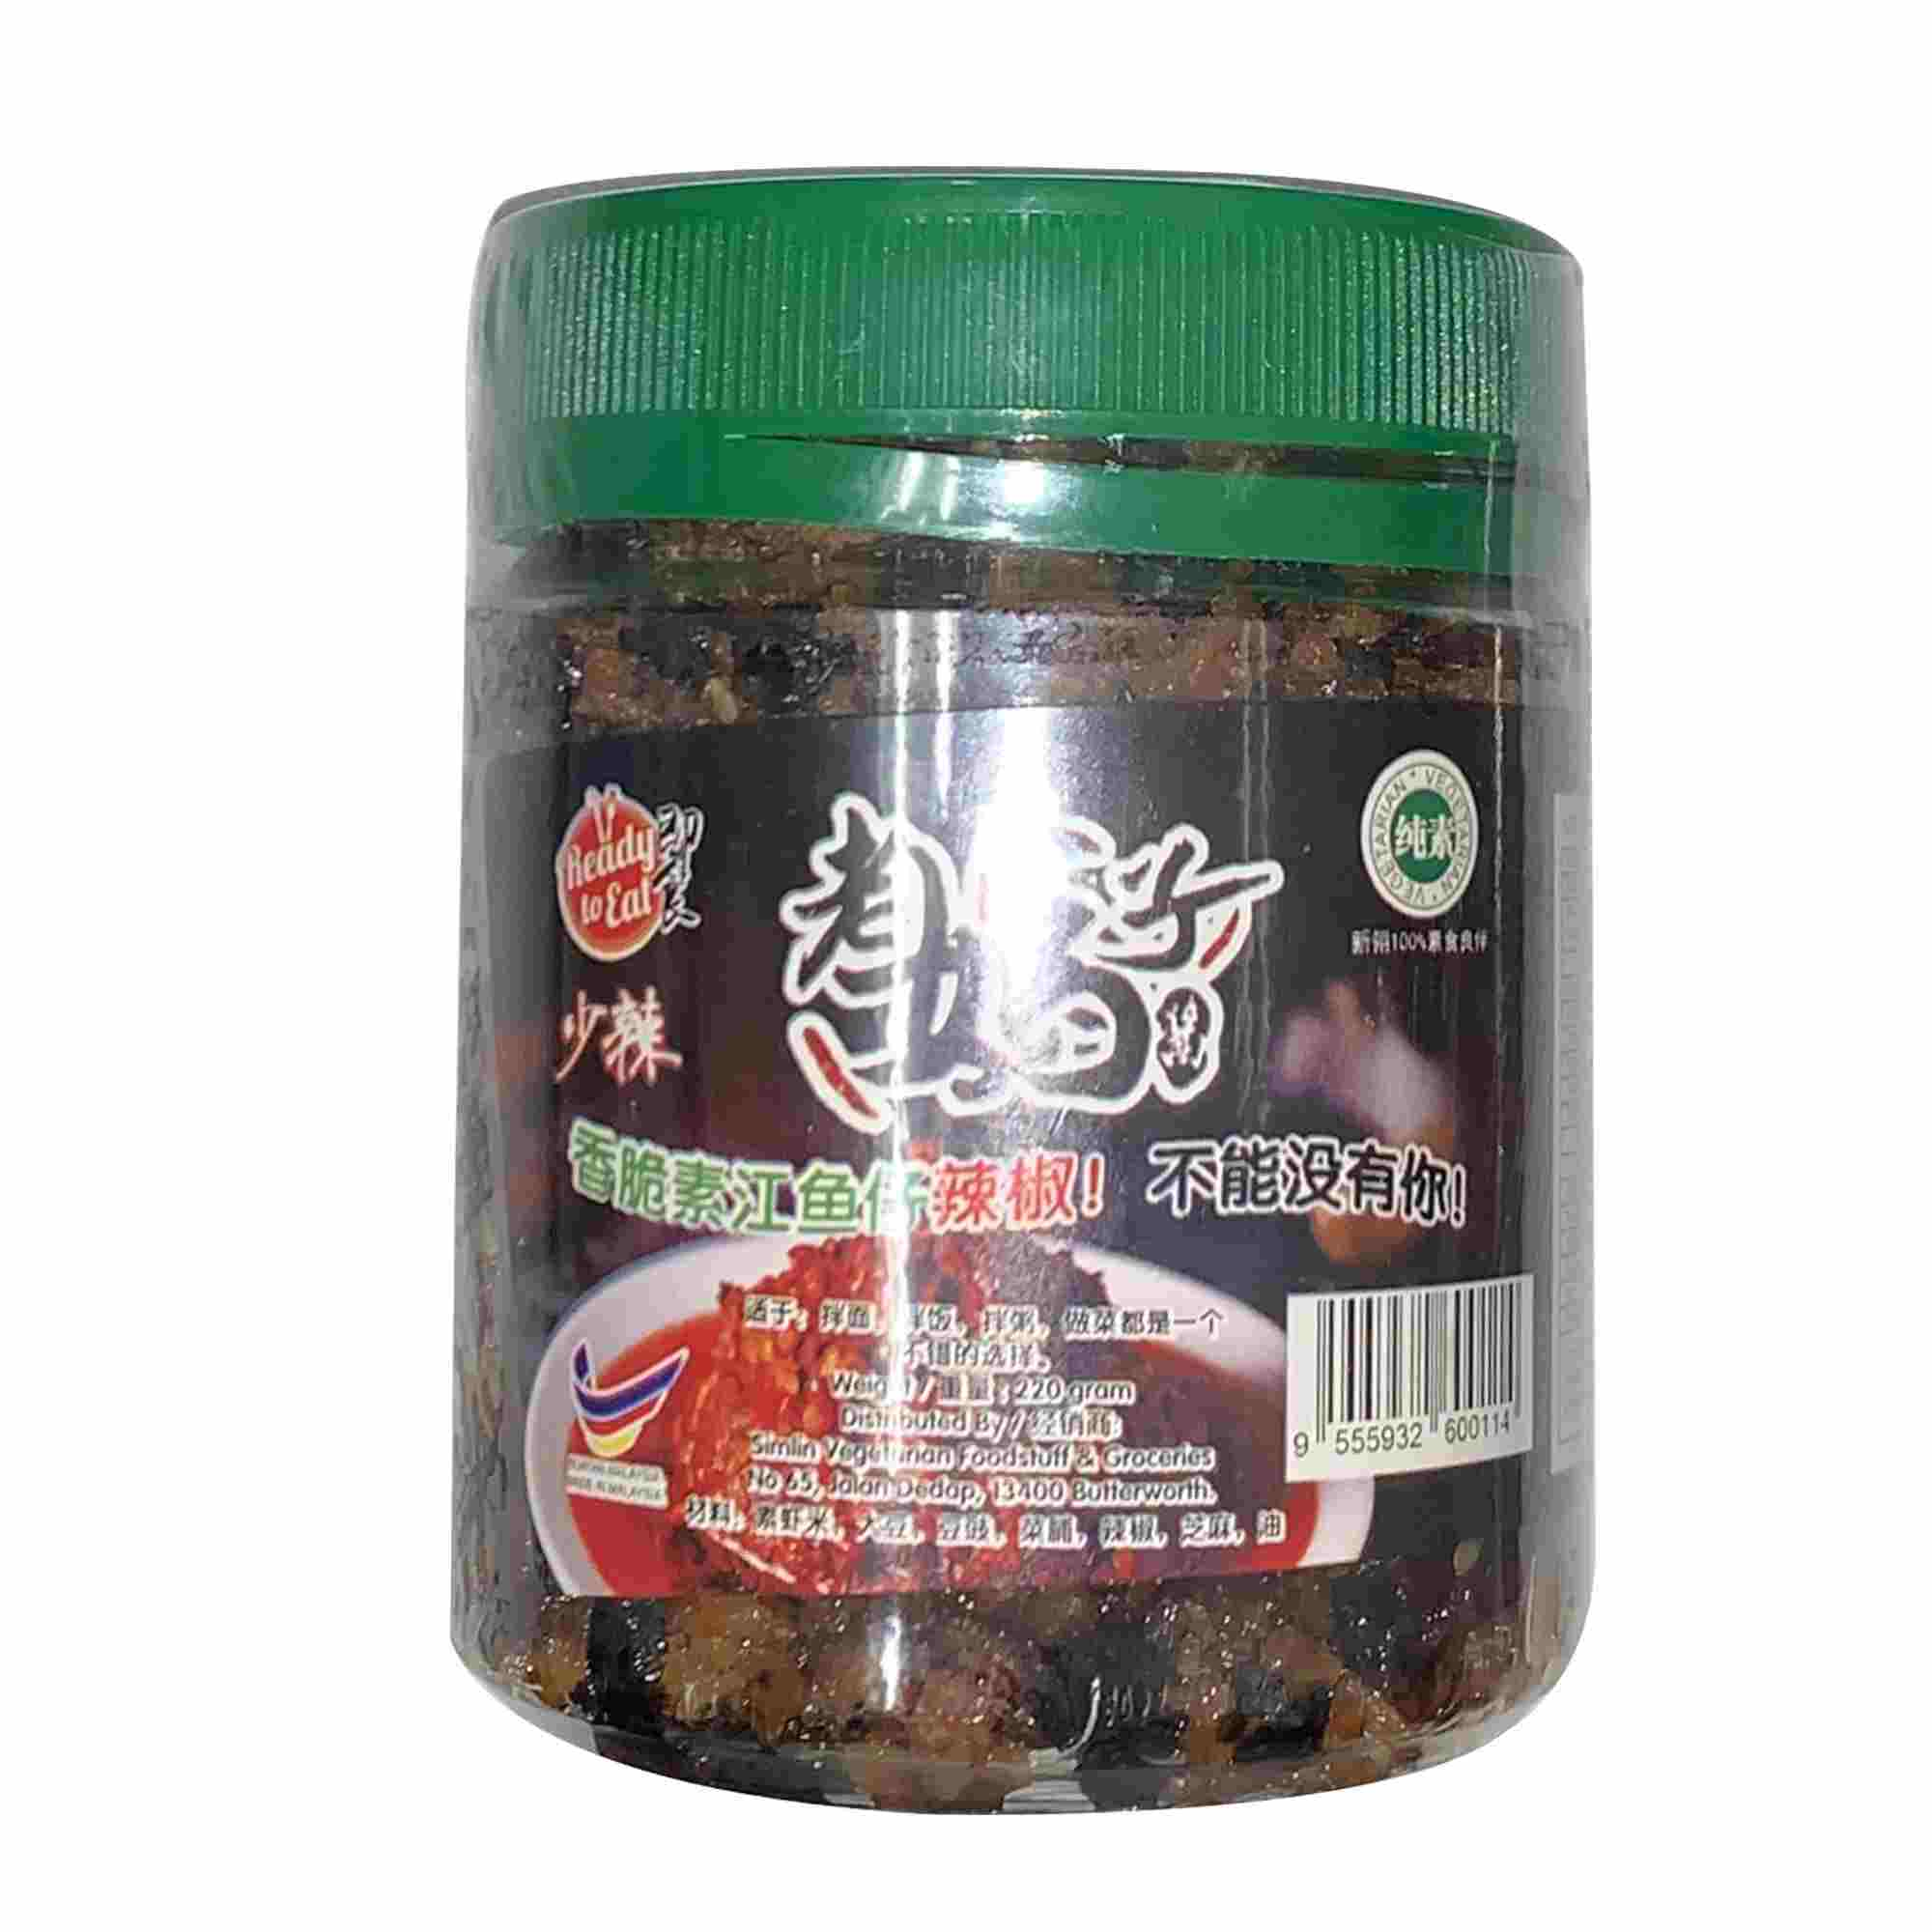 Image old mum crispy vegan chili 老妈子香脆素江鱼仔辣椒 220grams